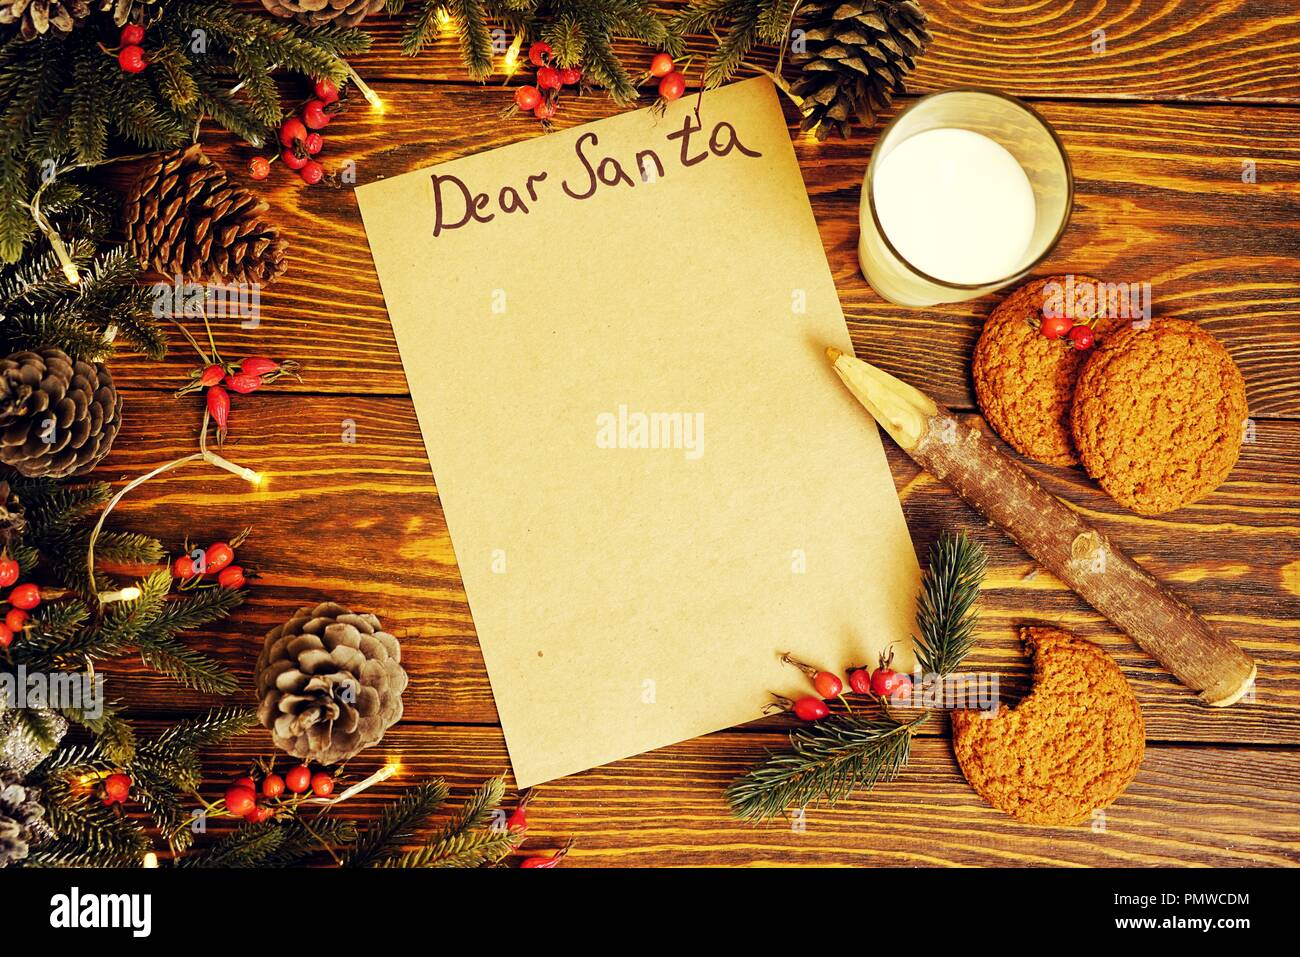 rustic styled vintage style wooden texture background happy new year 2019 greetings on wooden empty space for your text christmas background with